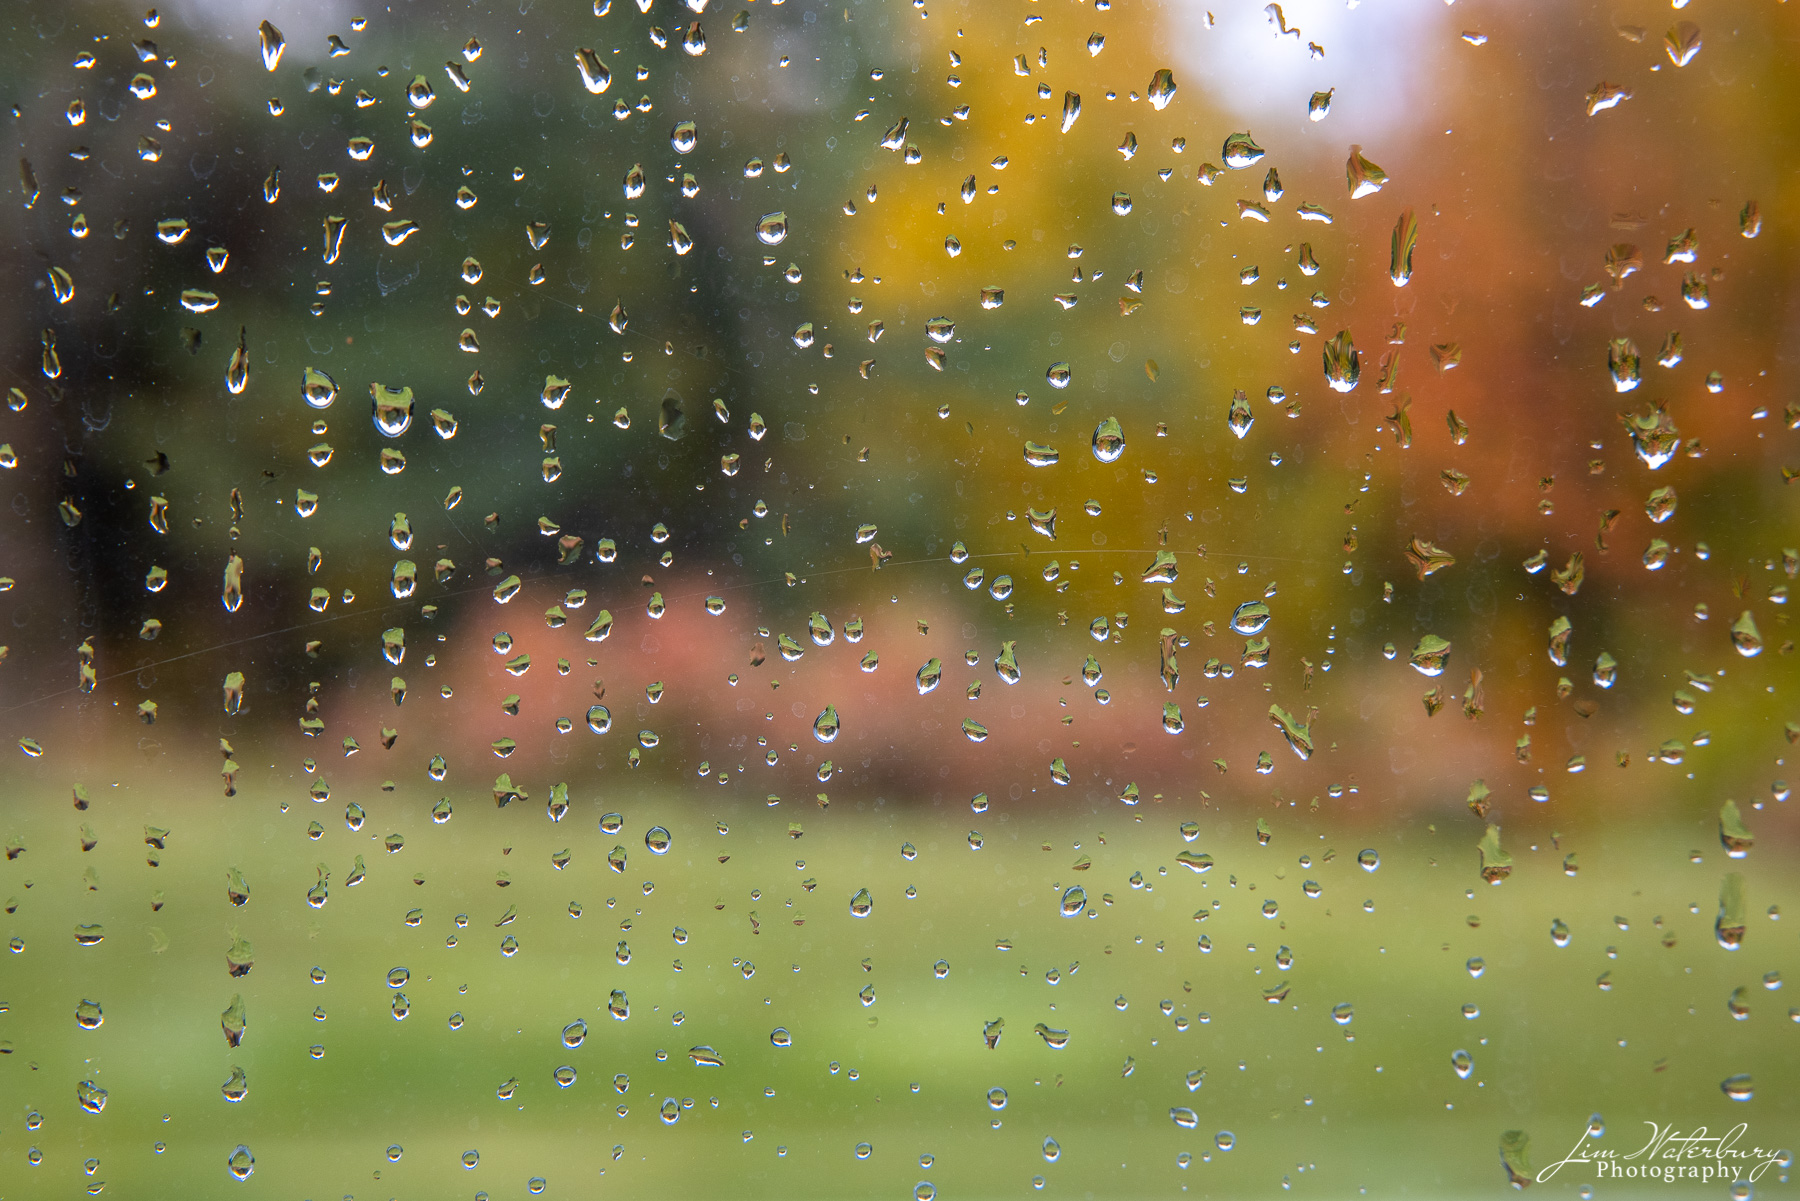 Abstract image of trees with their fall colors, photographed through a window covered with rain drops.